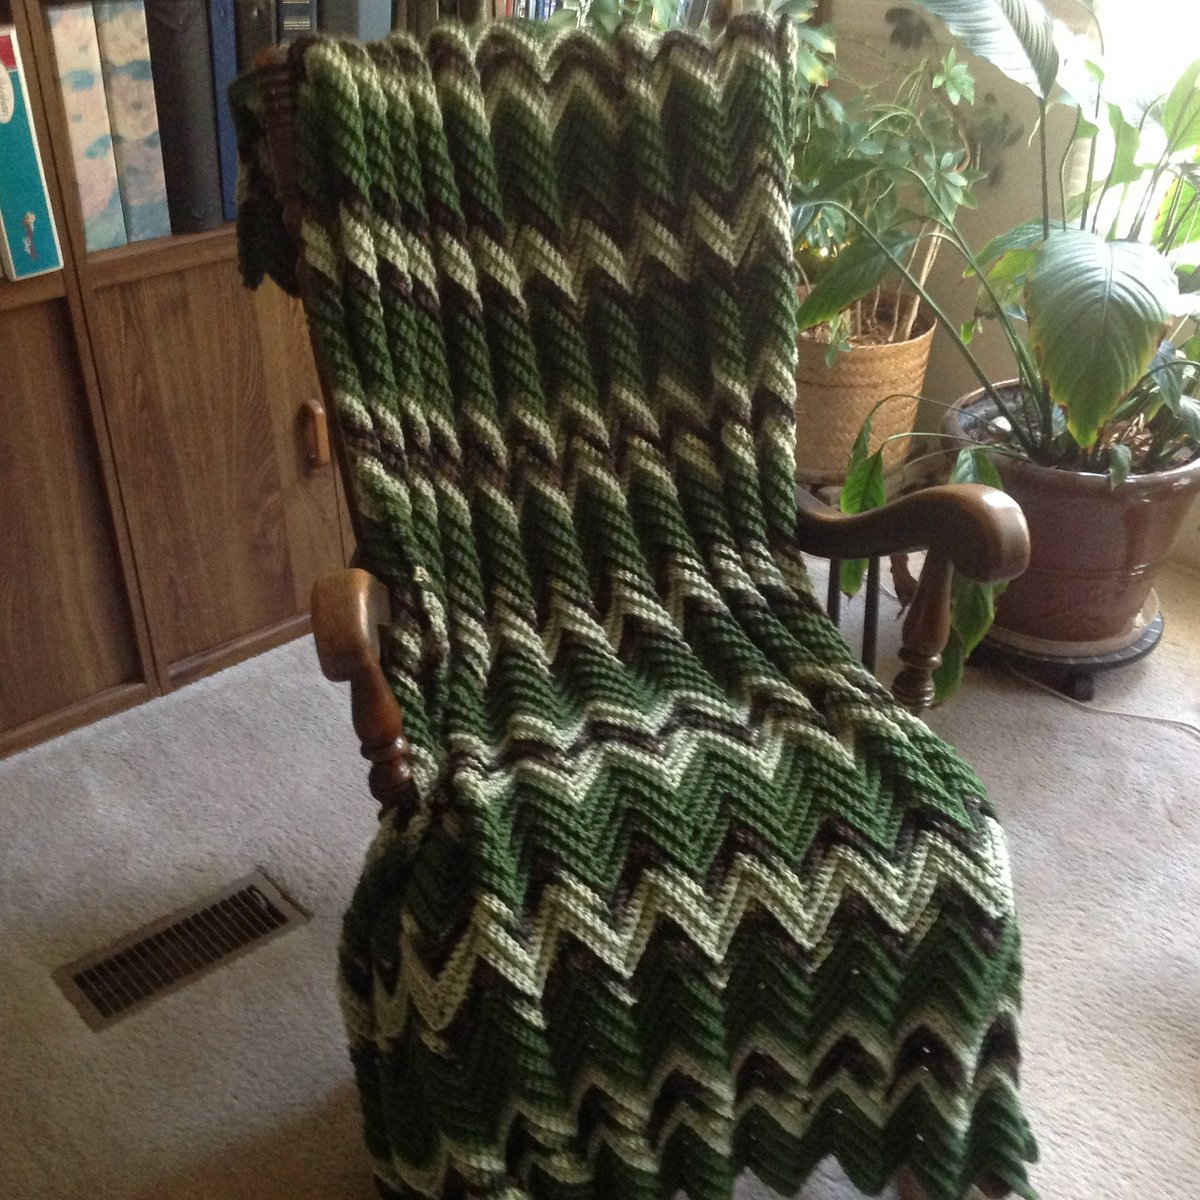 Camo & Green Hand Crocheted Chevron Afghan/Throw/Blanket, Free Ship, Man Cave Throw/Outdoorsman/Hunter/Fisherman/Military Gift, Made in USA  http:// tuppu.net/51ebce84     #YarnQueens #Etsy #MadeInUsa <br>http://pic.twitter.com/ahzrgEmBRz